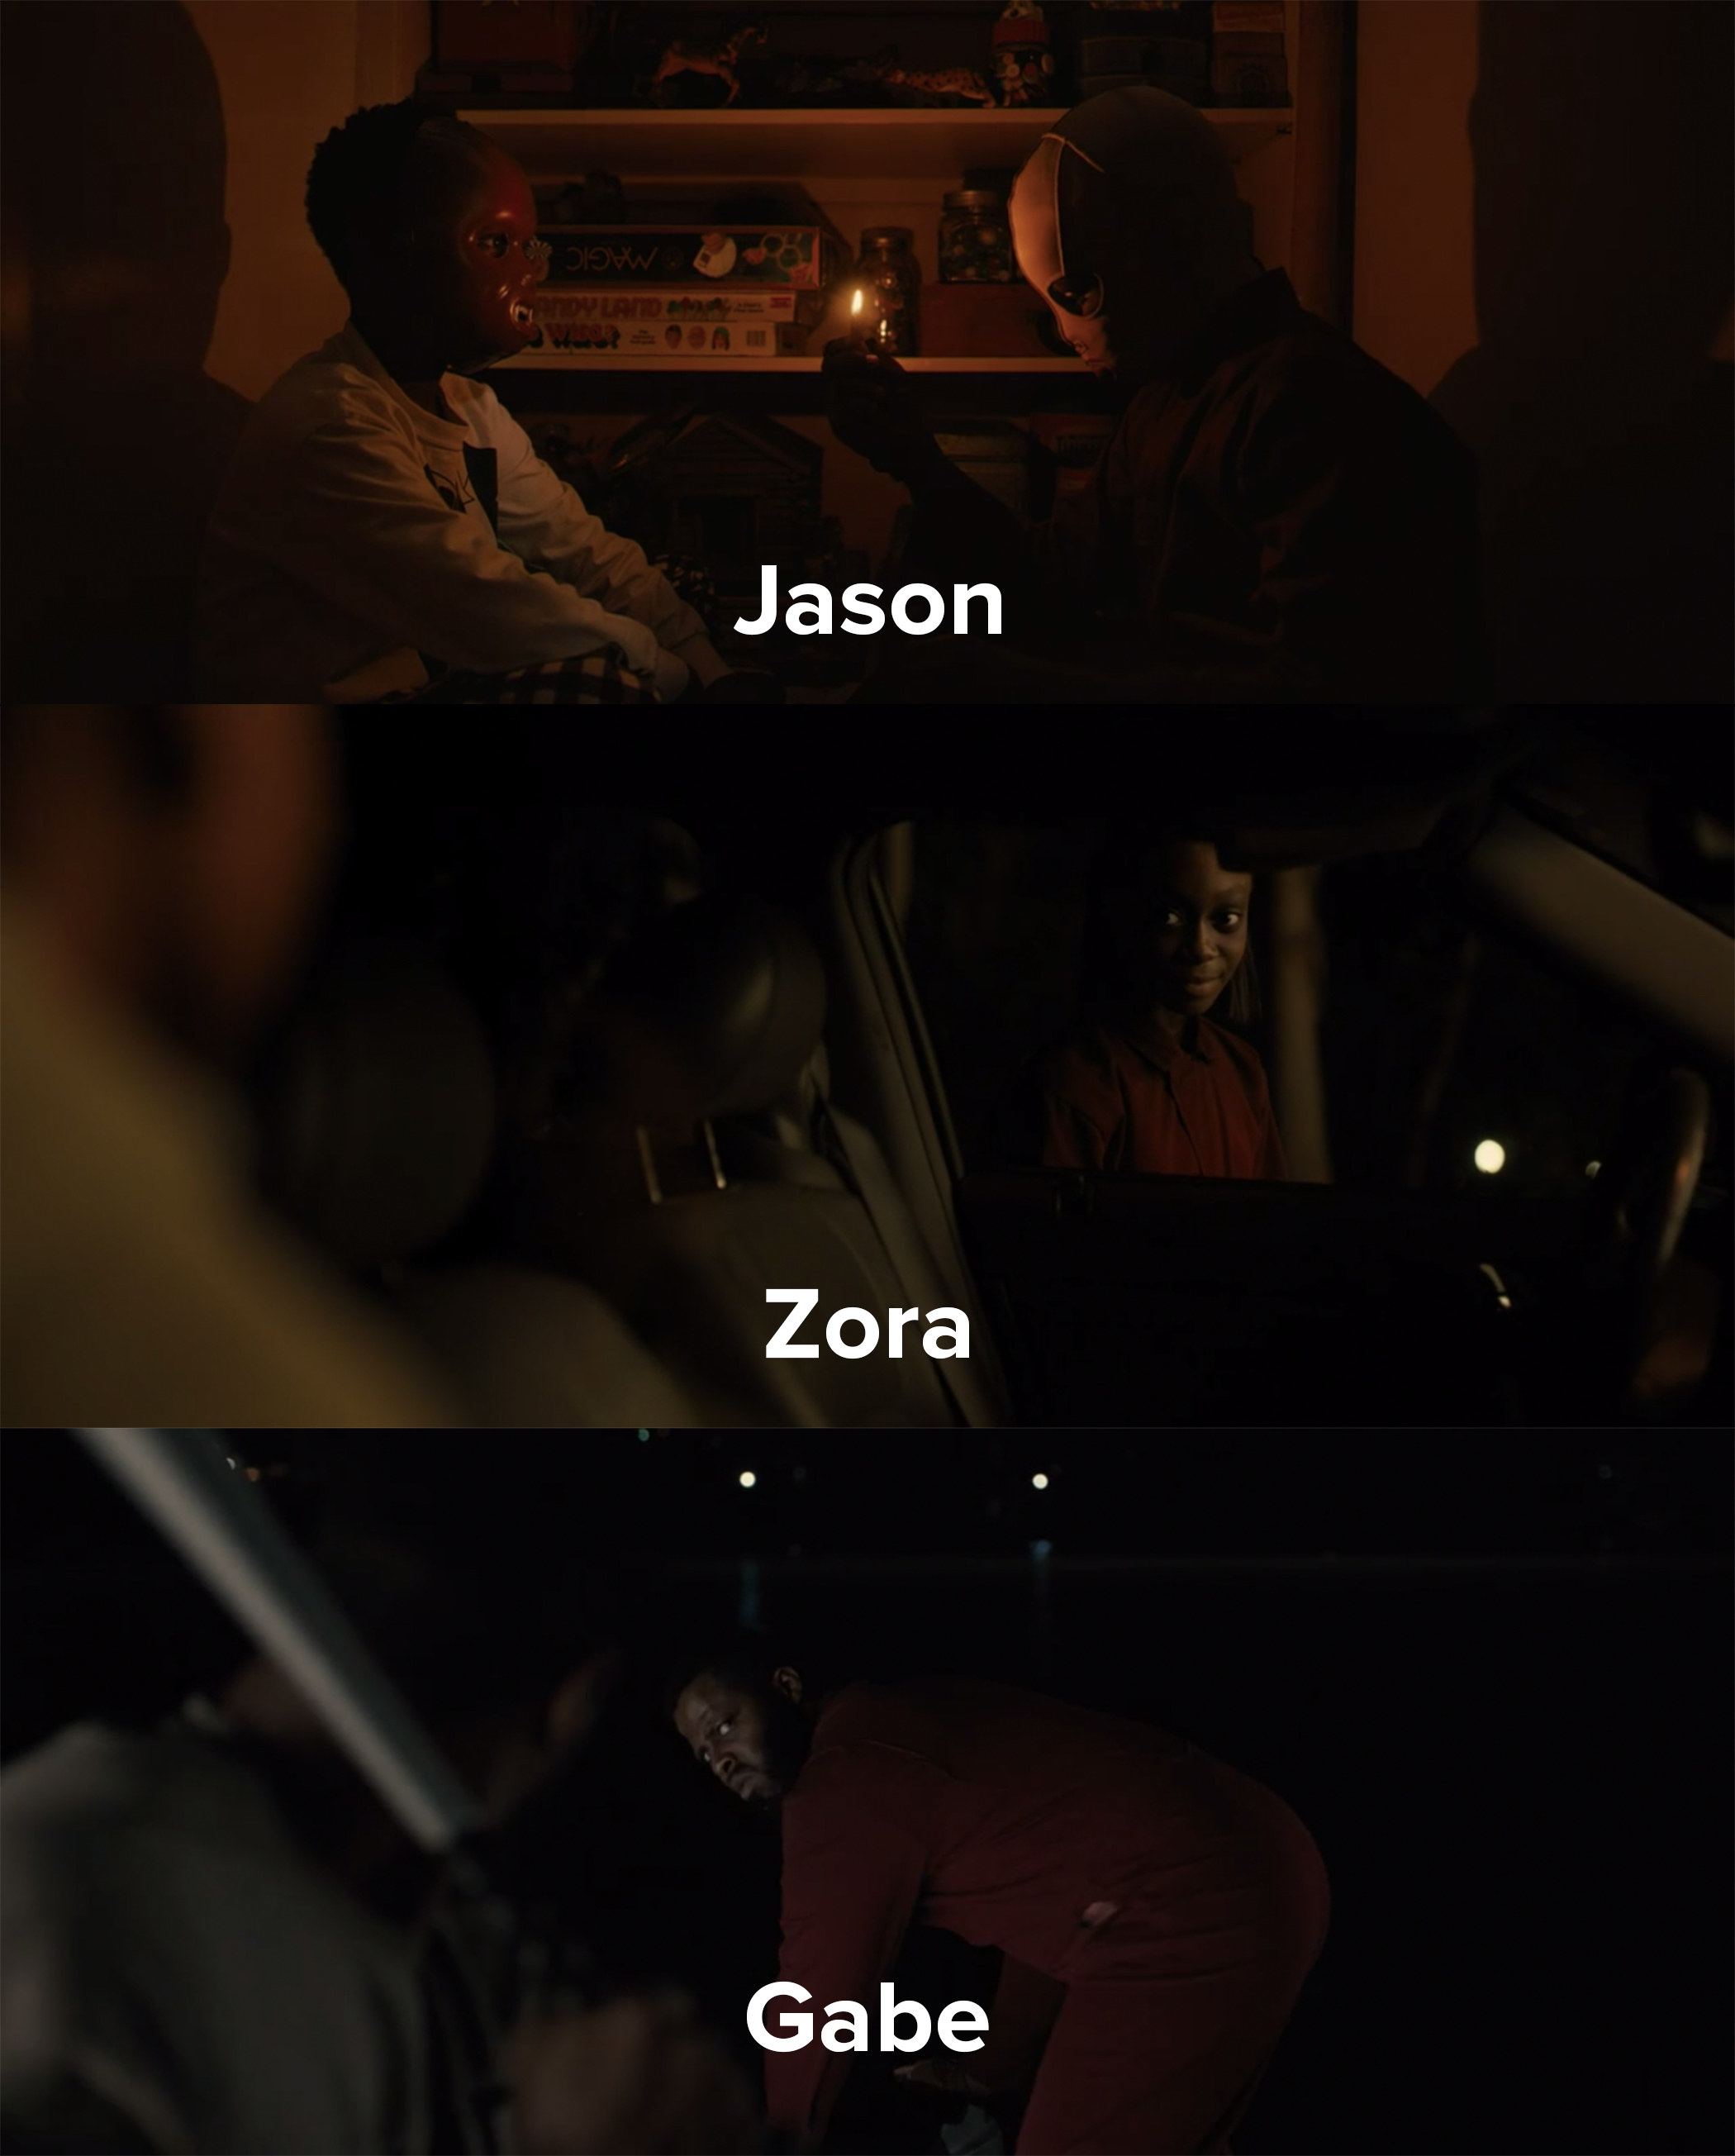 Jason, Zora, and Gabe are tormented by their evil doppelgangers